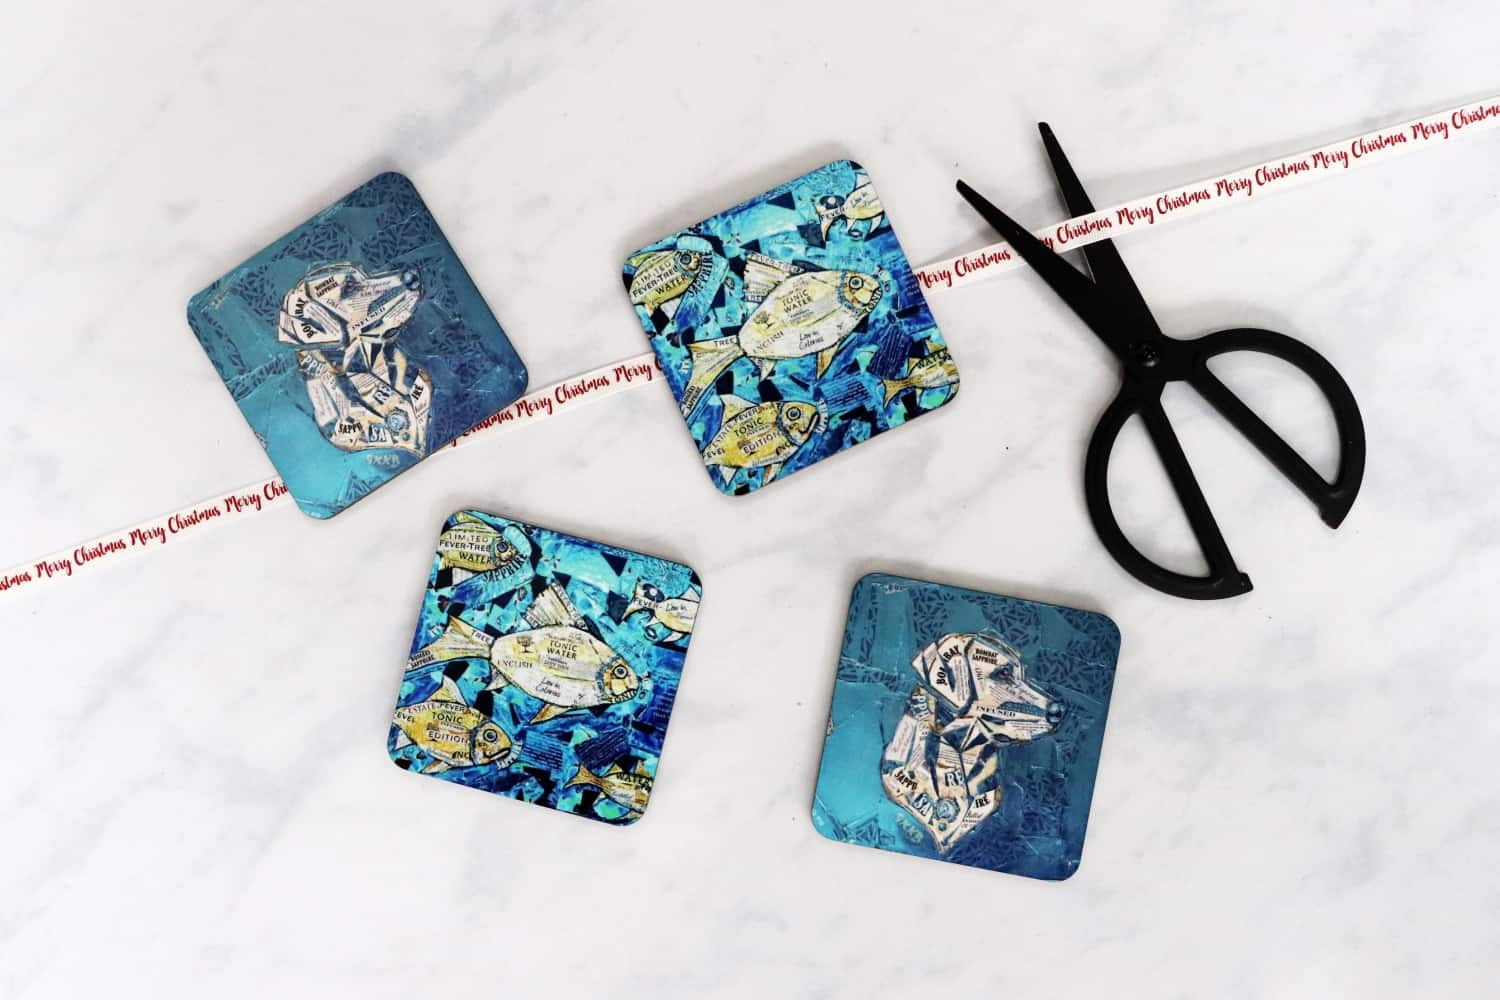 The Fin and Tonic and Bombay Sapphire Gin Lab Coasters